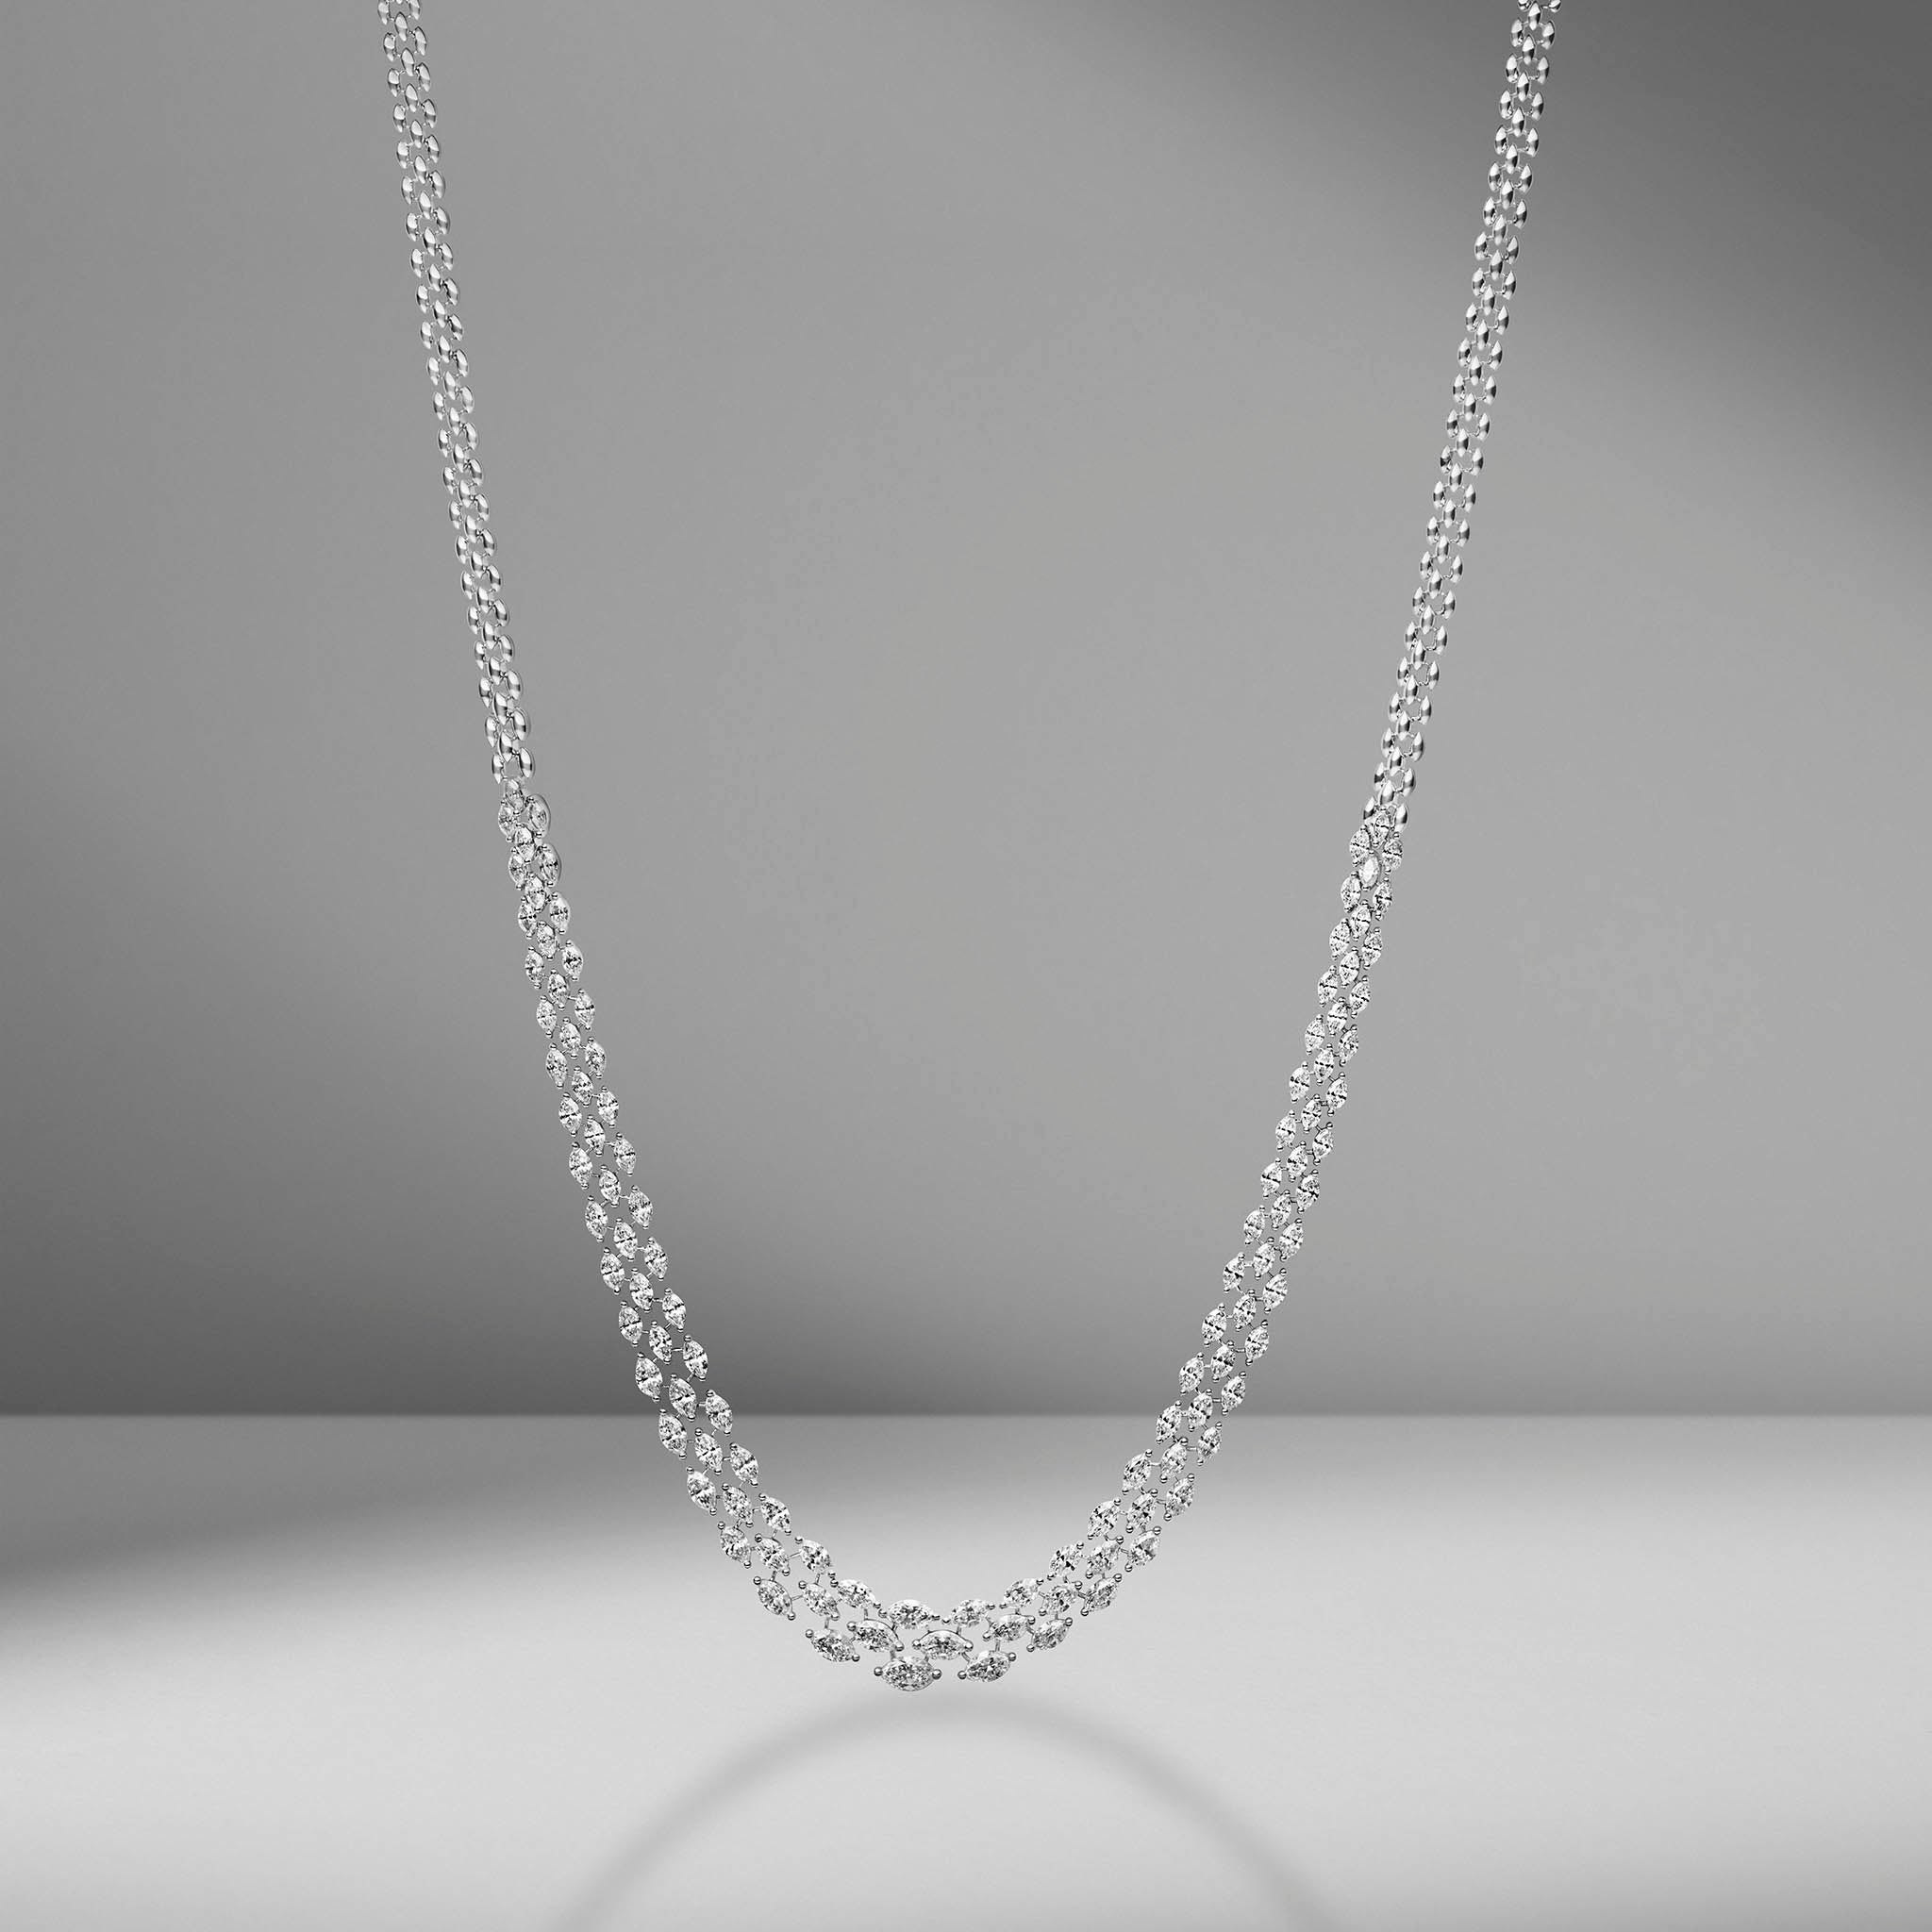 Triple Row Marquise Diamond Necklace